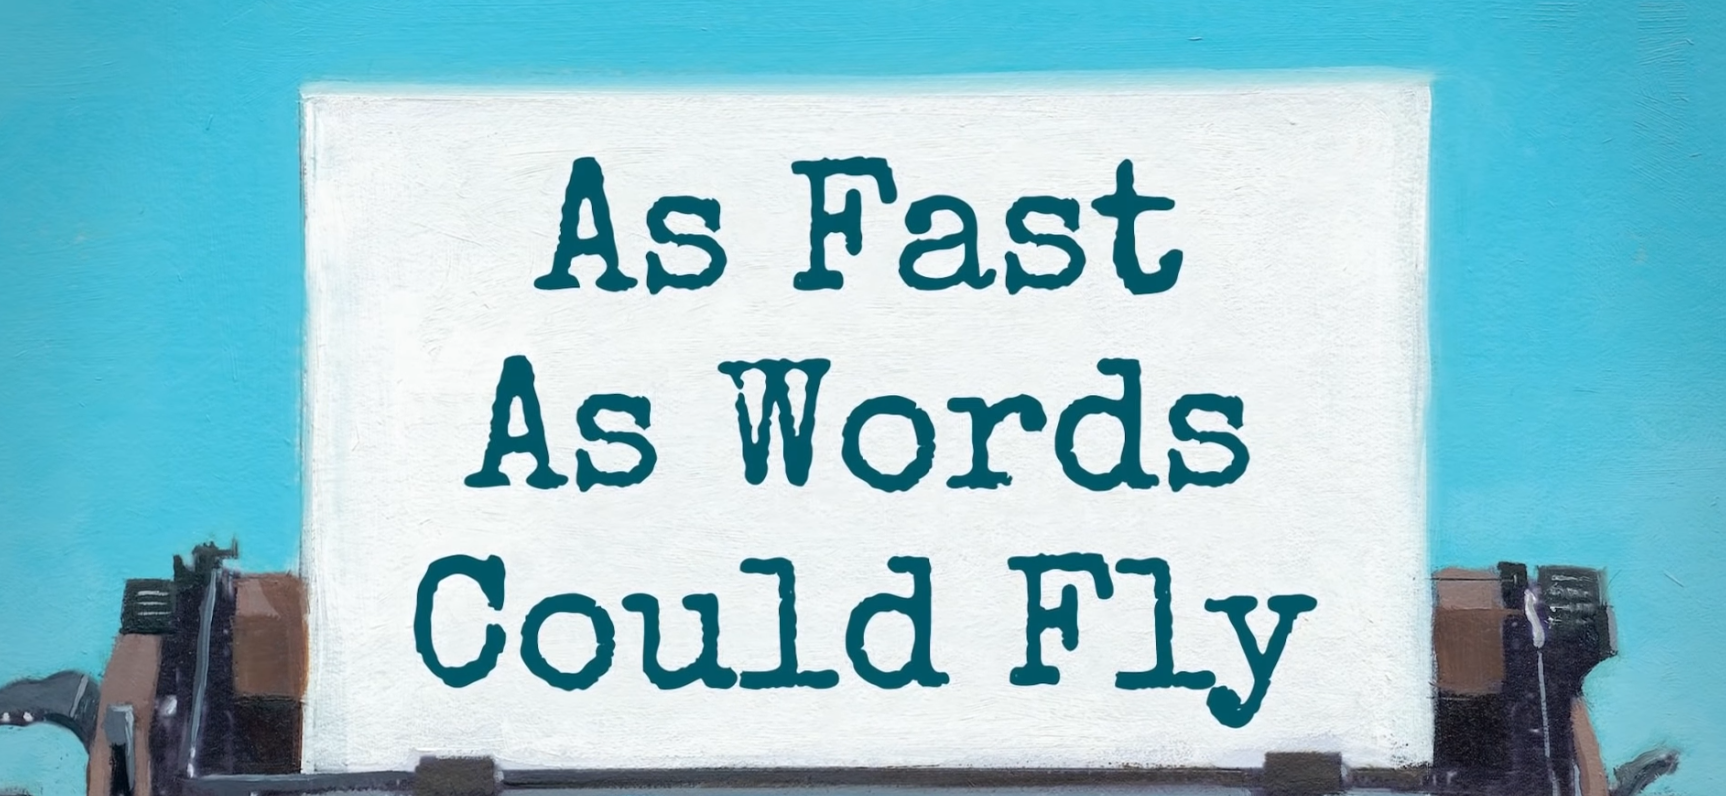 As Fast as Words Could Fly